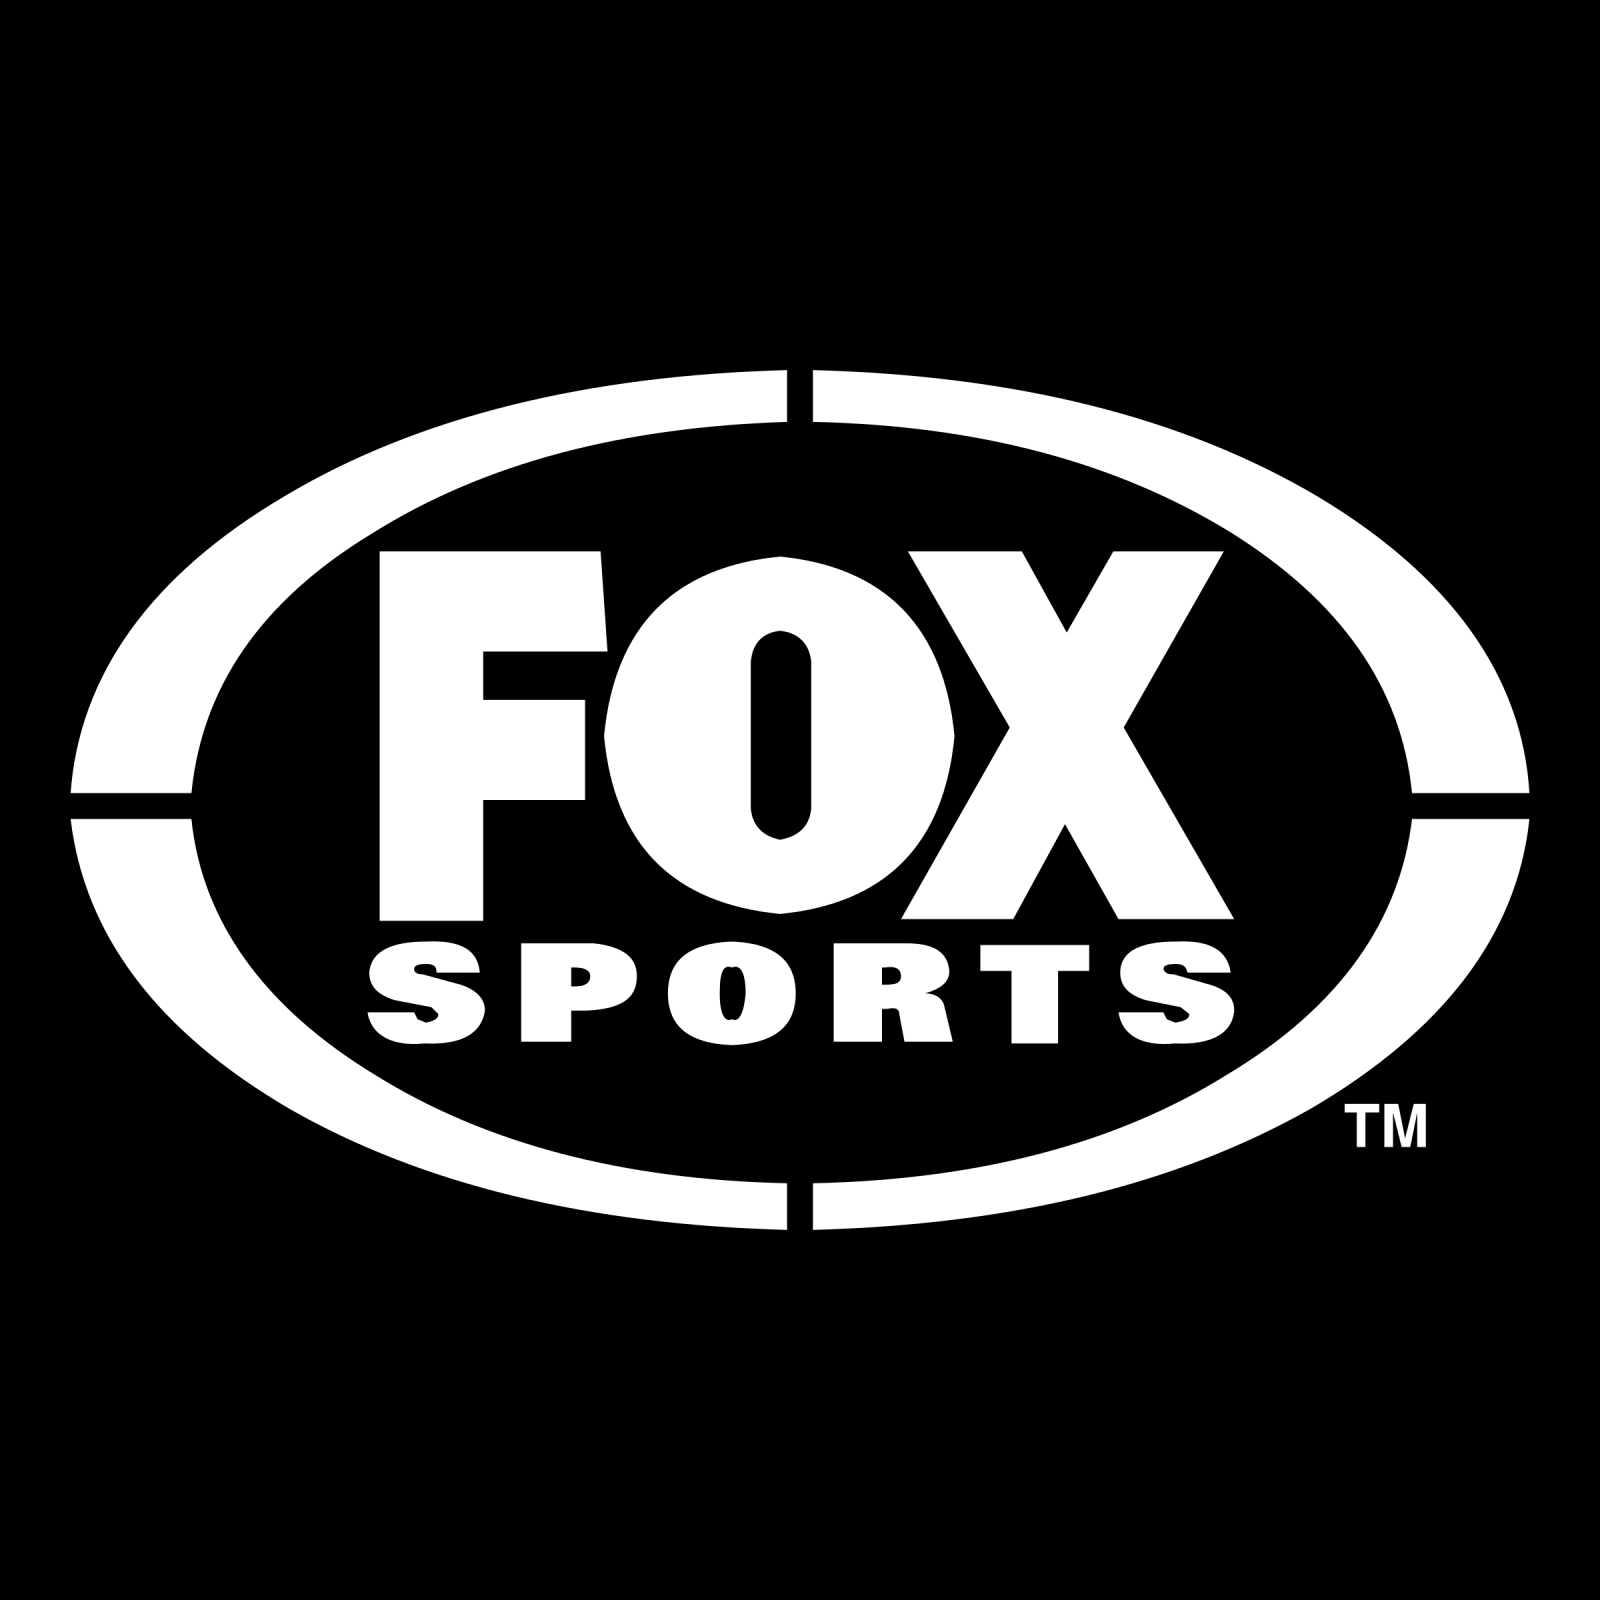 fox-sports-1-logo-png-transparent | Curb the Rage